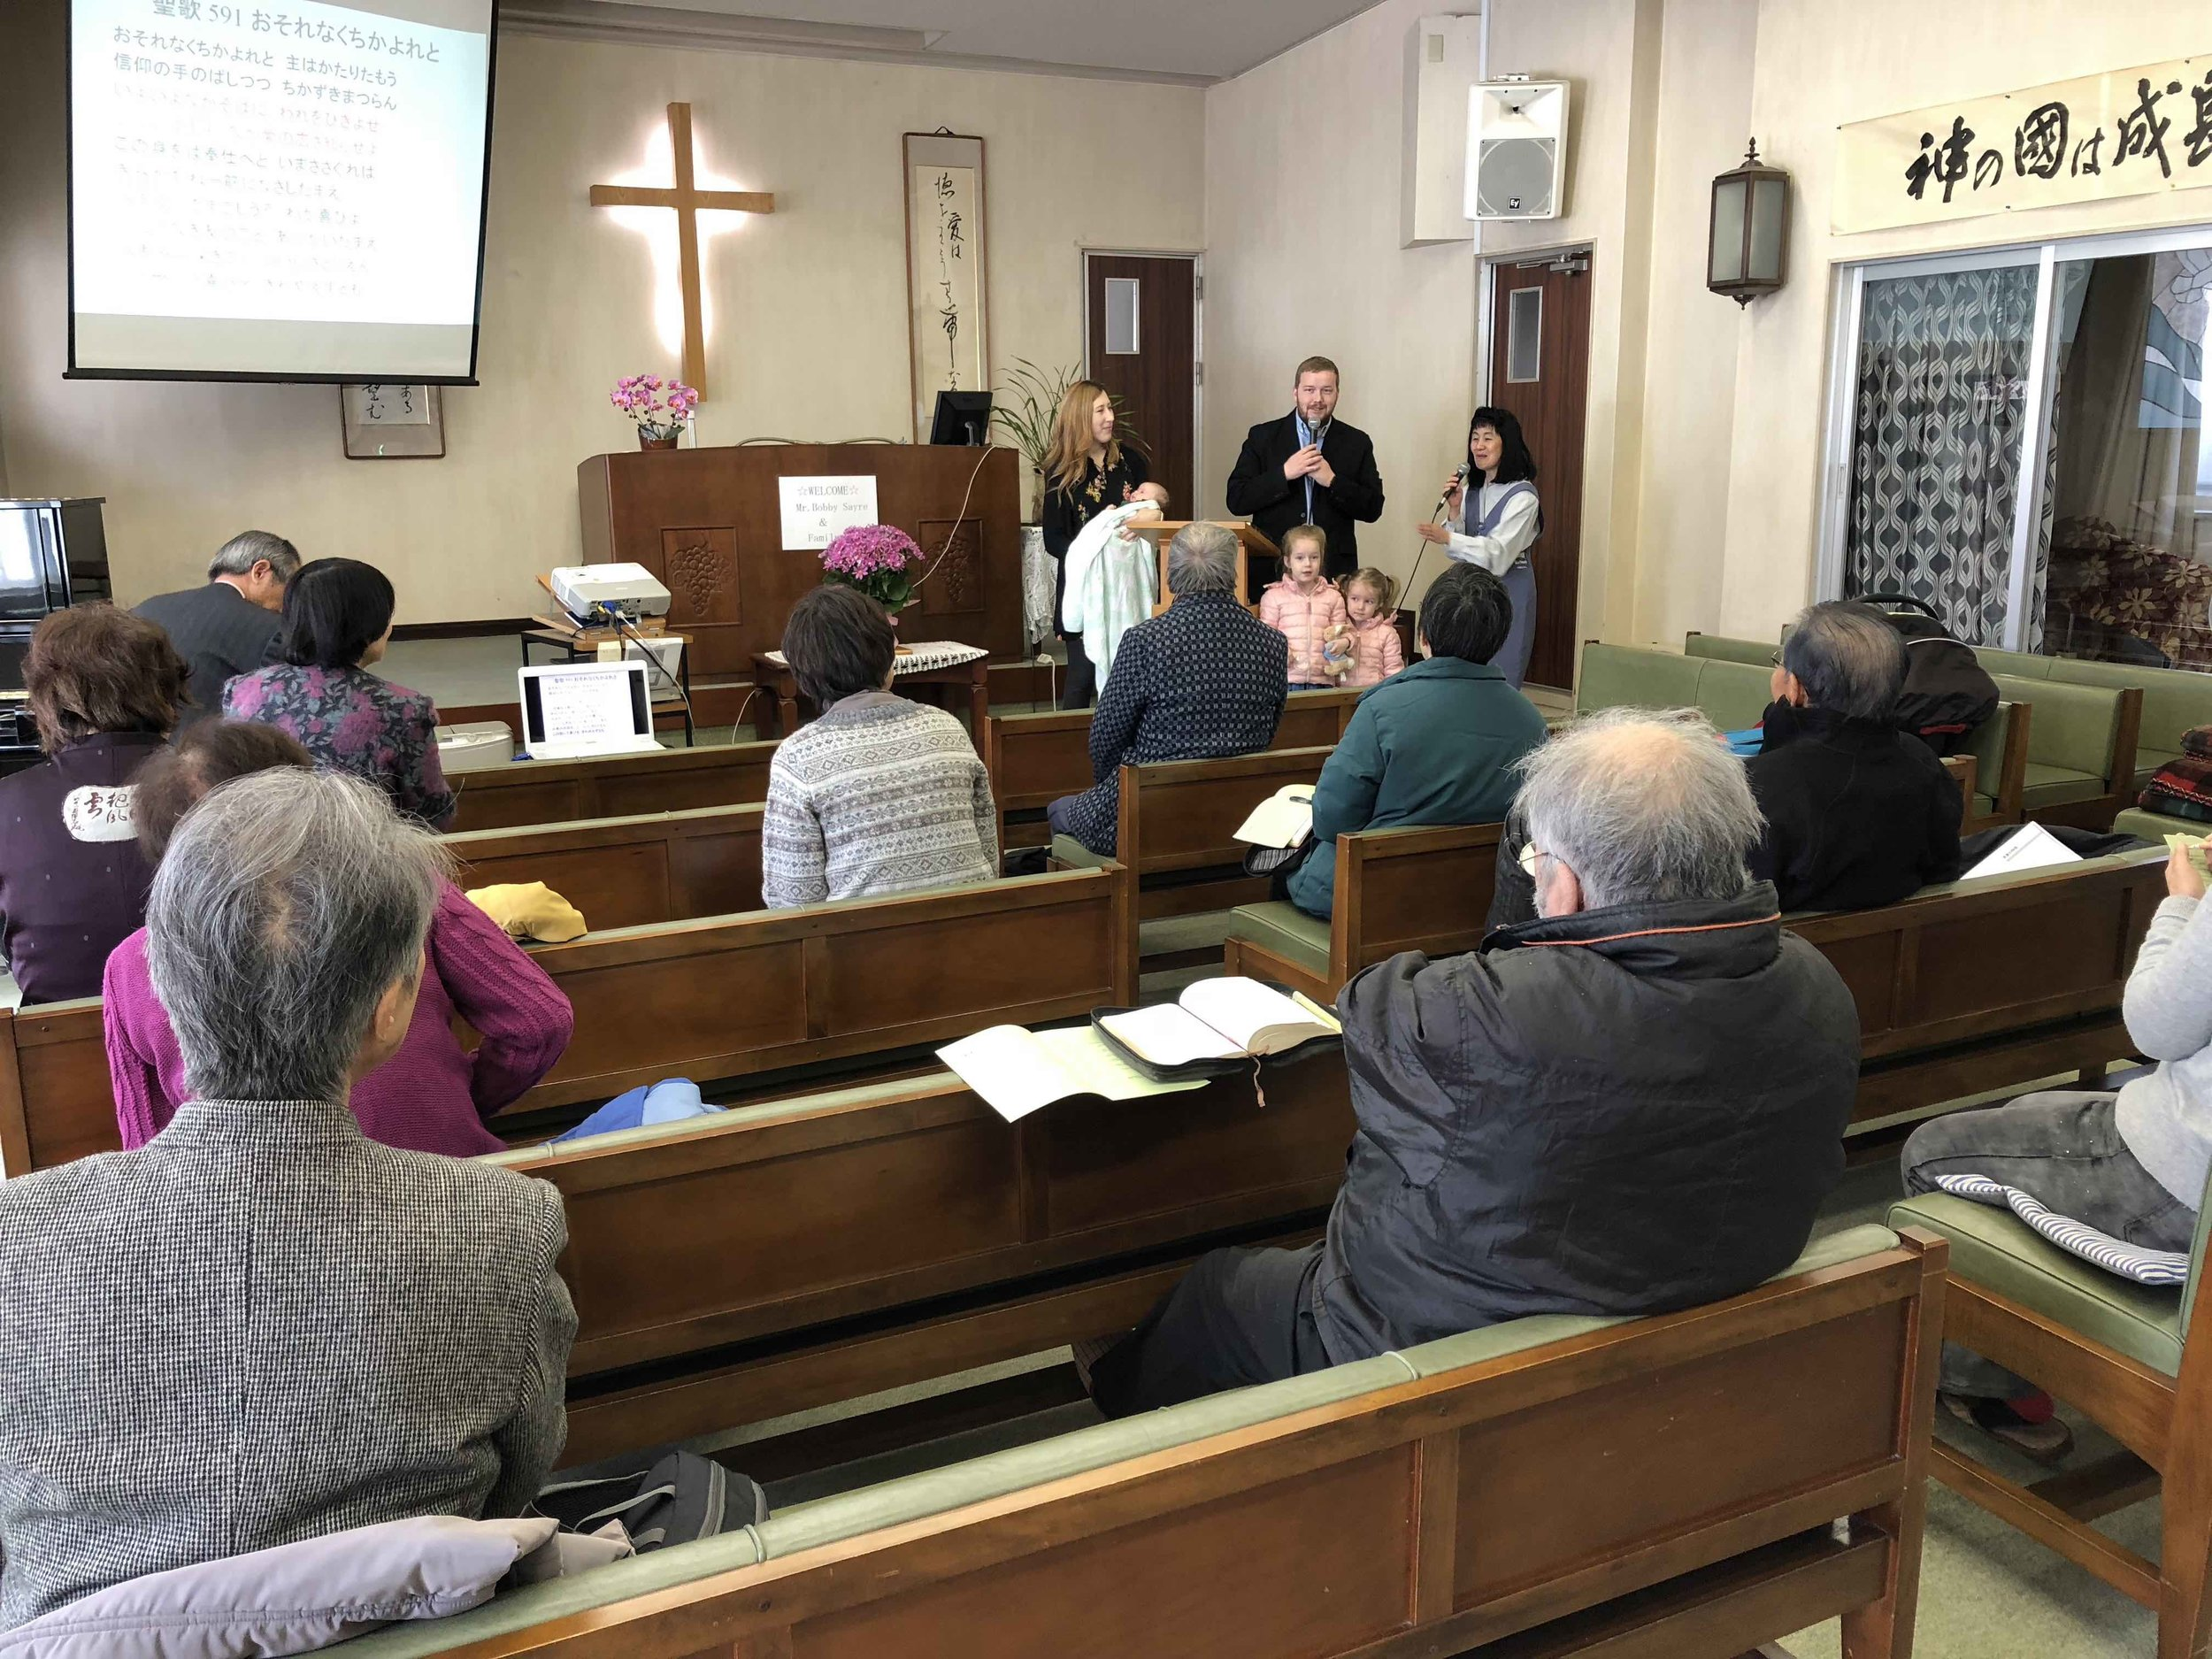 Here we are being introduced to the church & explaining why God has called us to Japan. The Great Commission must be fulfilled!